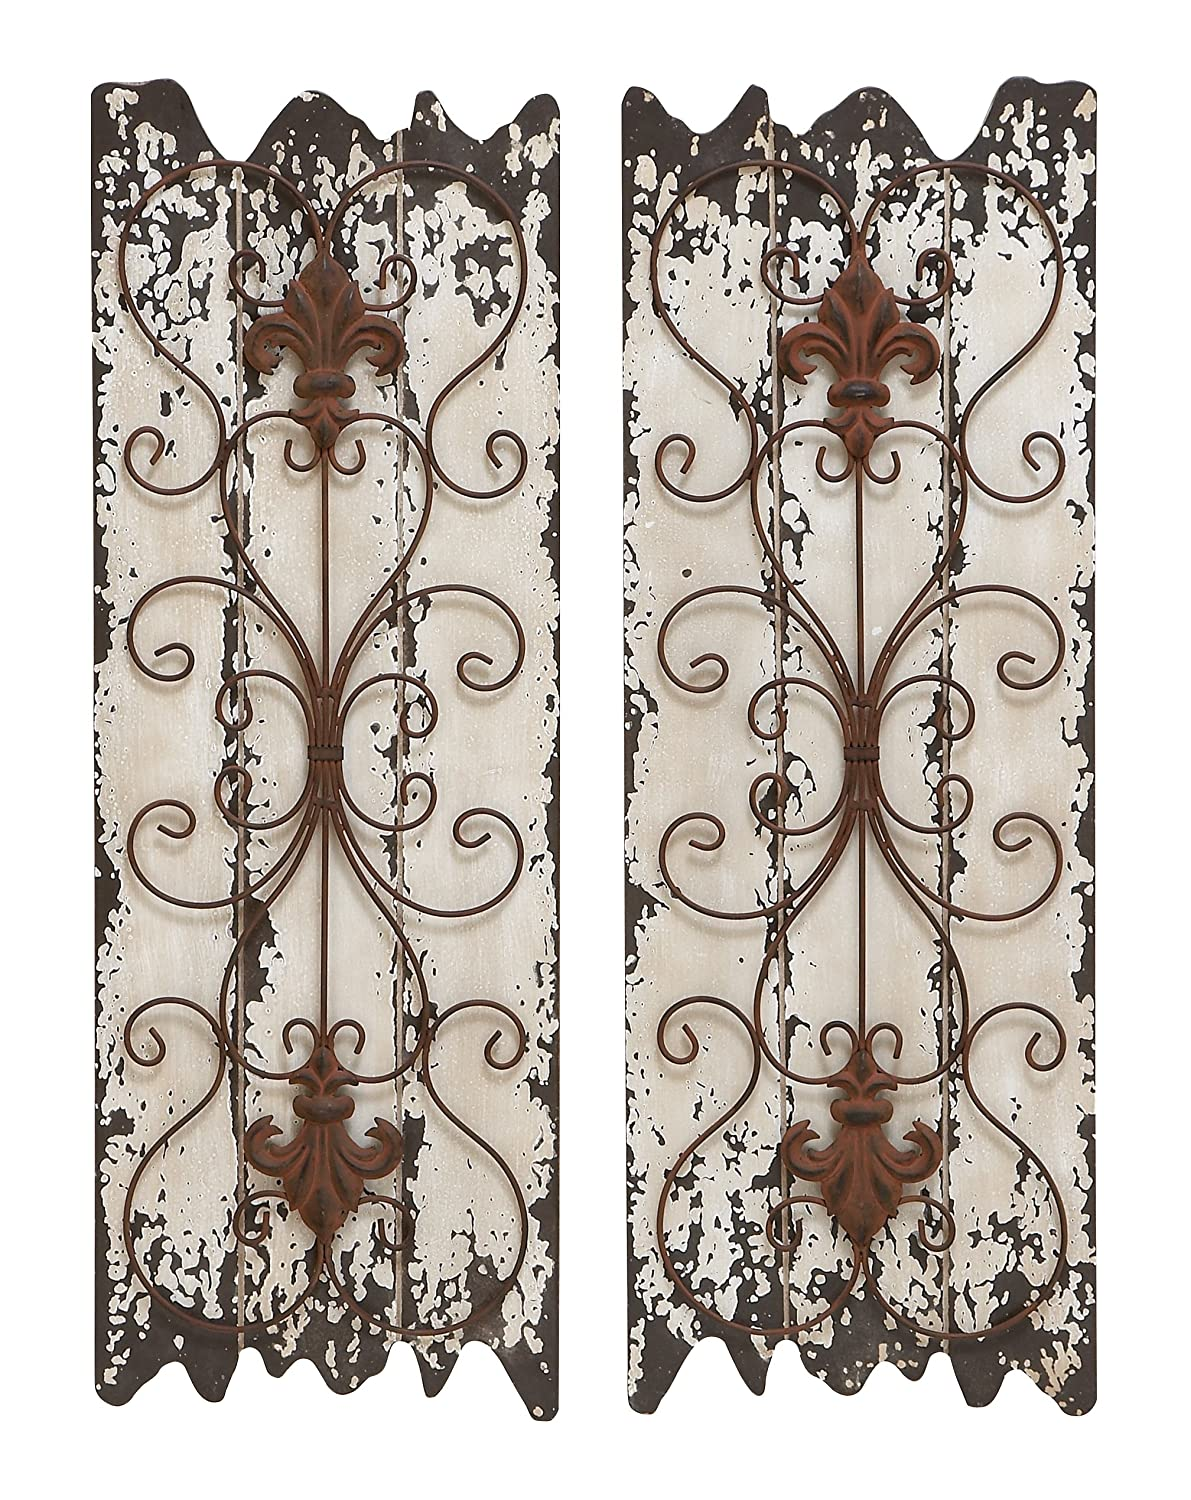 Wooden Wall Art Panels Part - 45: Amazon.com: Deco 79 Elegant Wall Sculpture Wood Metal Wall Decor,  32/11-Inch, Set Of 2: Home U0026 Kitchen